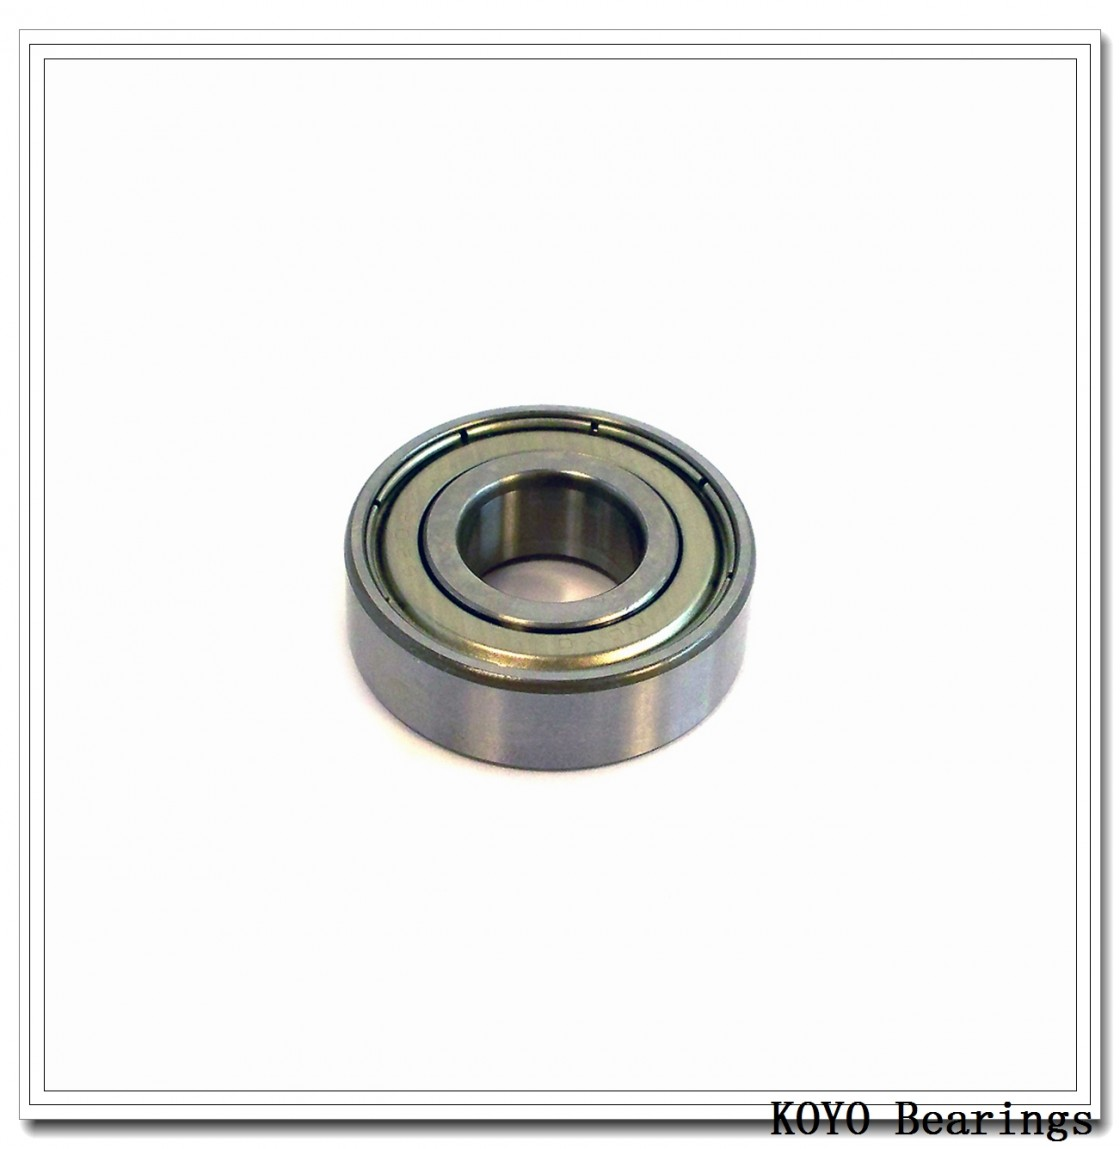 KOYO 47TS392725-1 tapered roller bearings